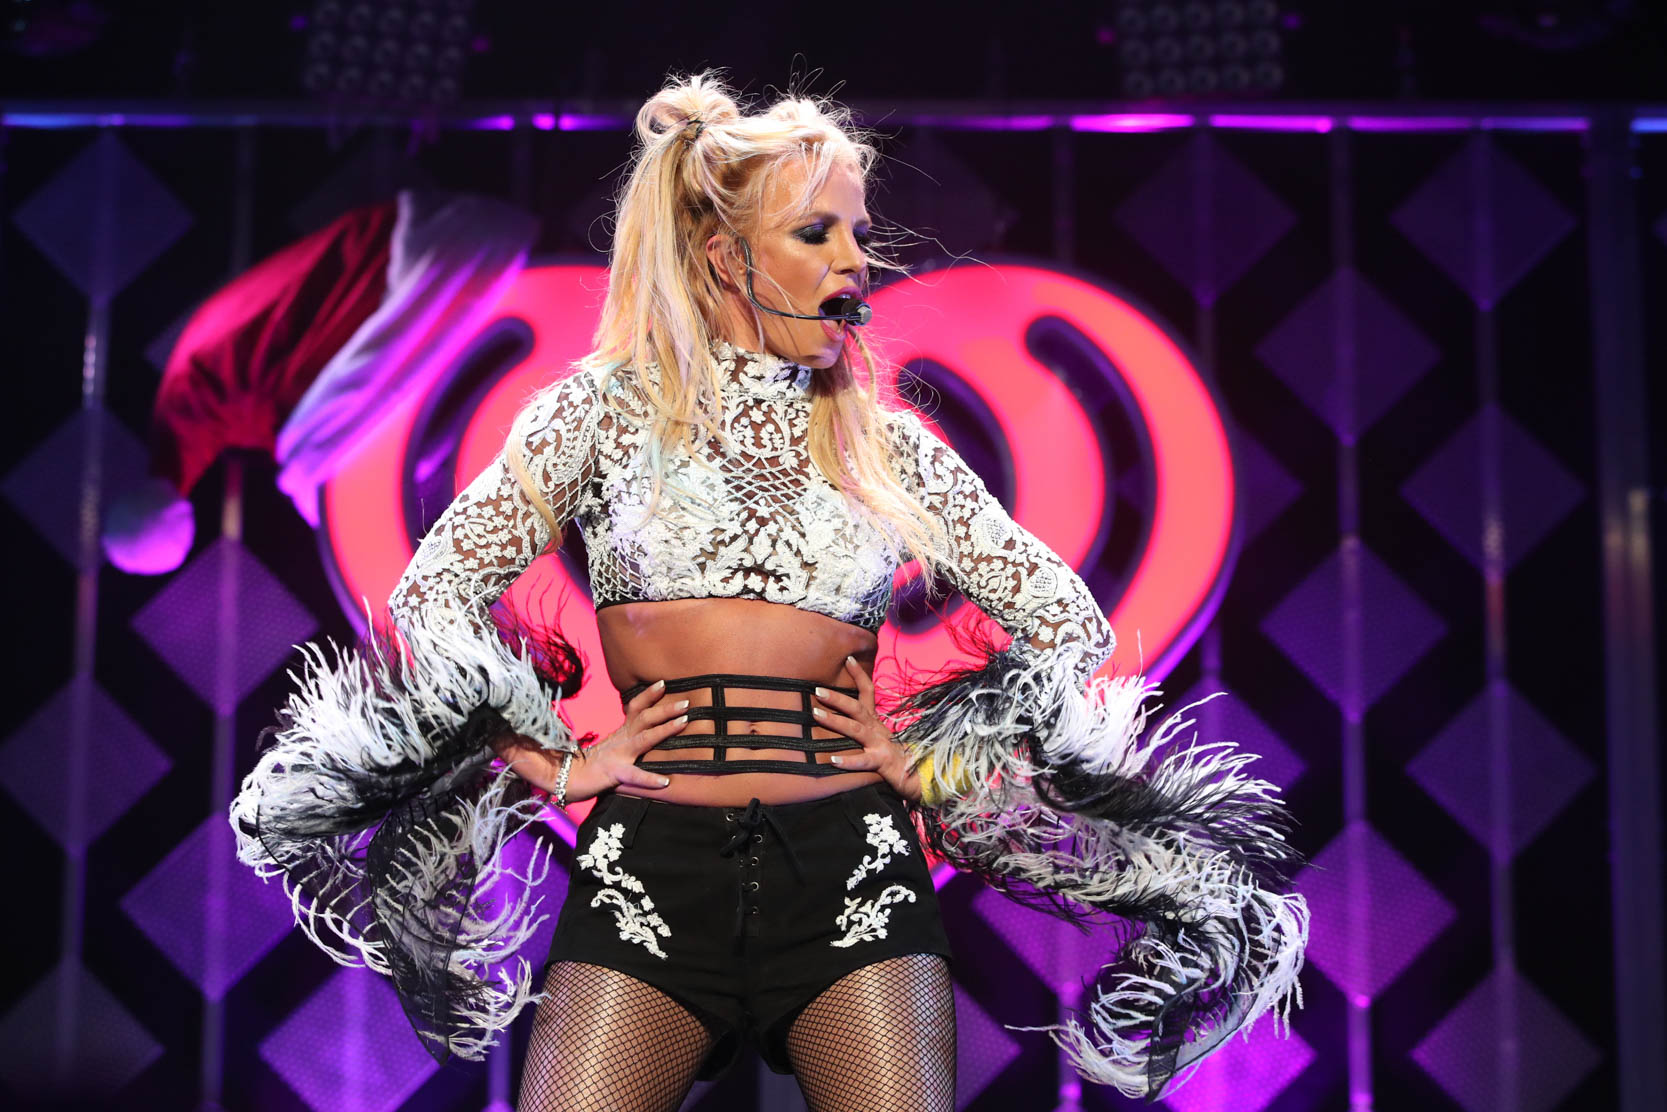 Britney Spears celebrates 35th birthday onstage